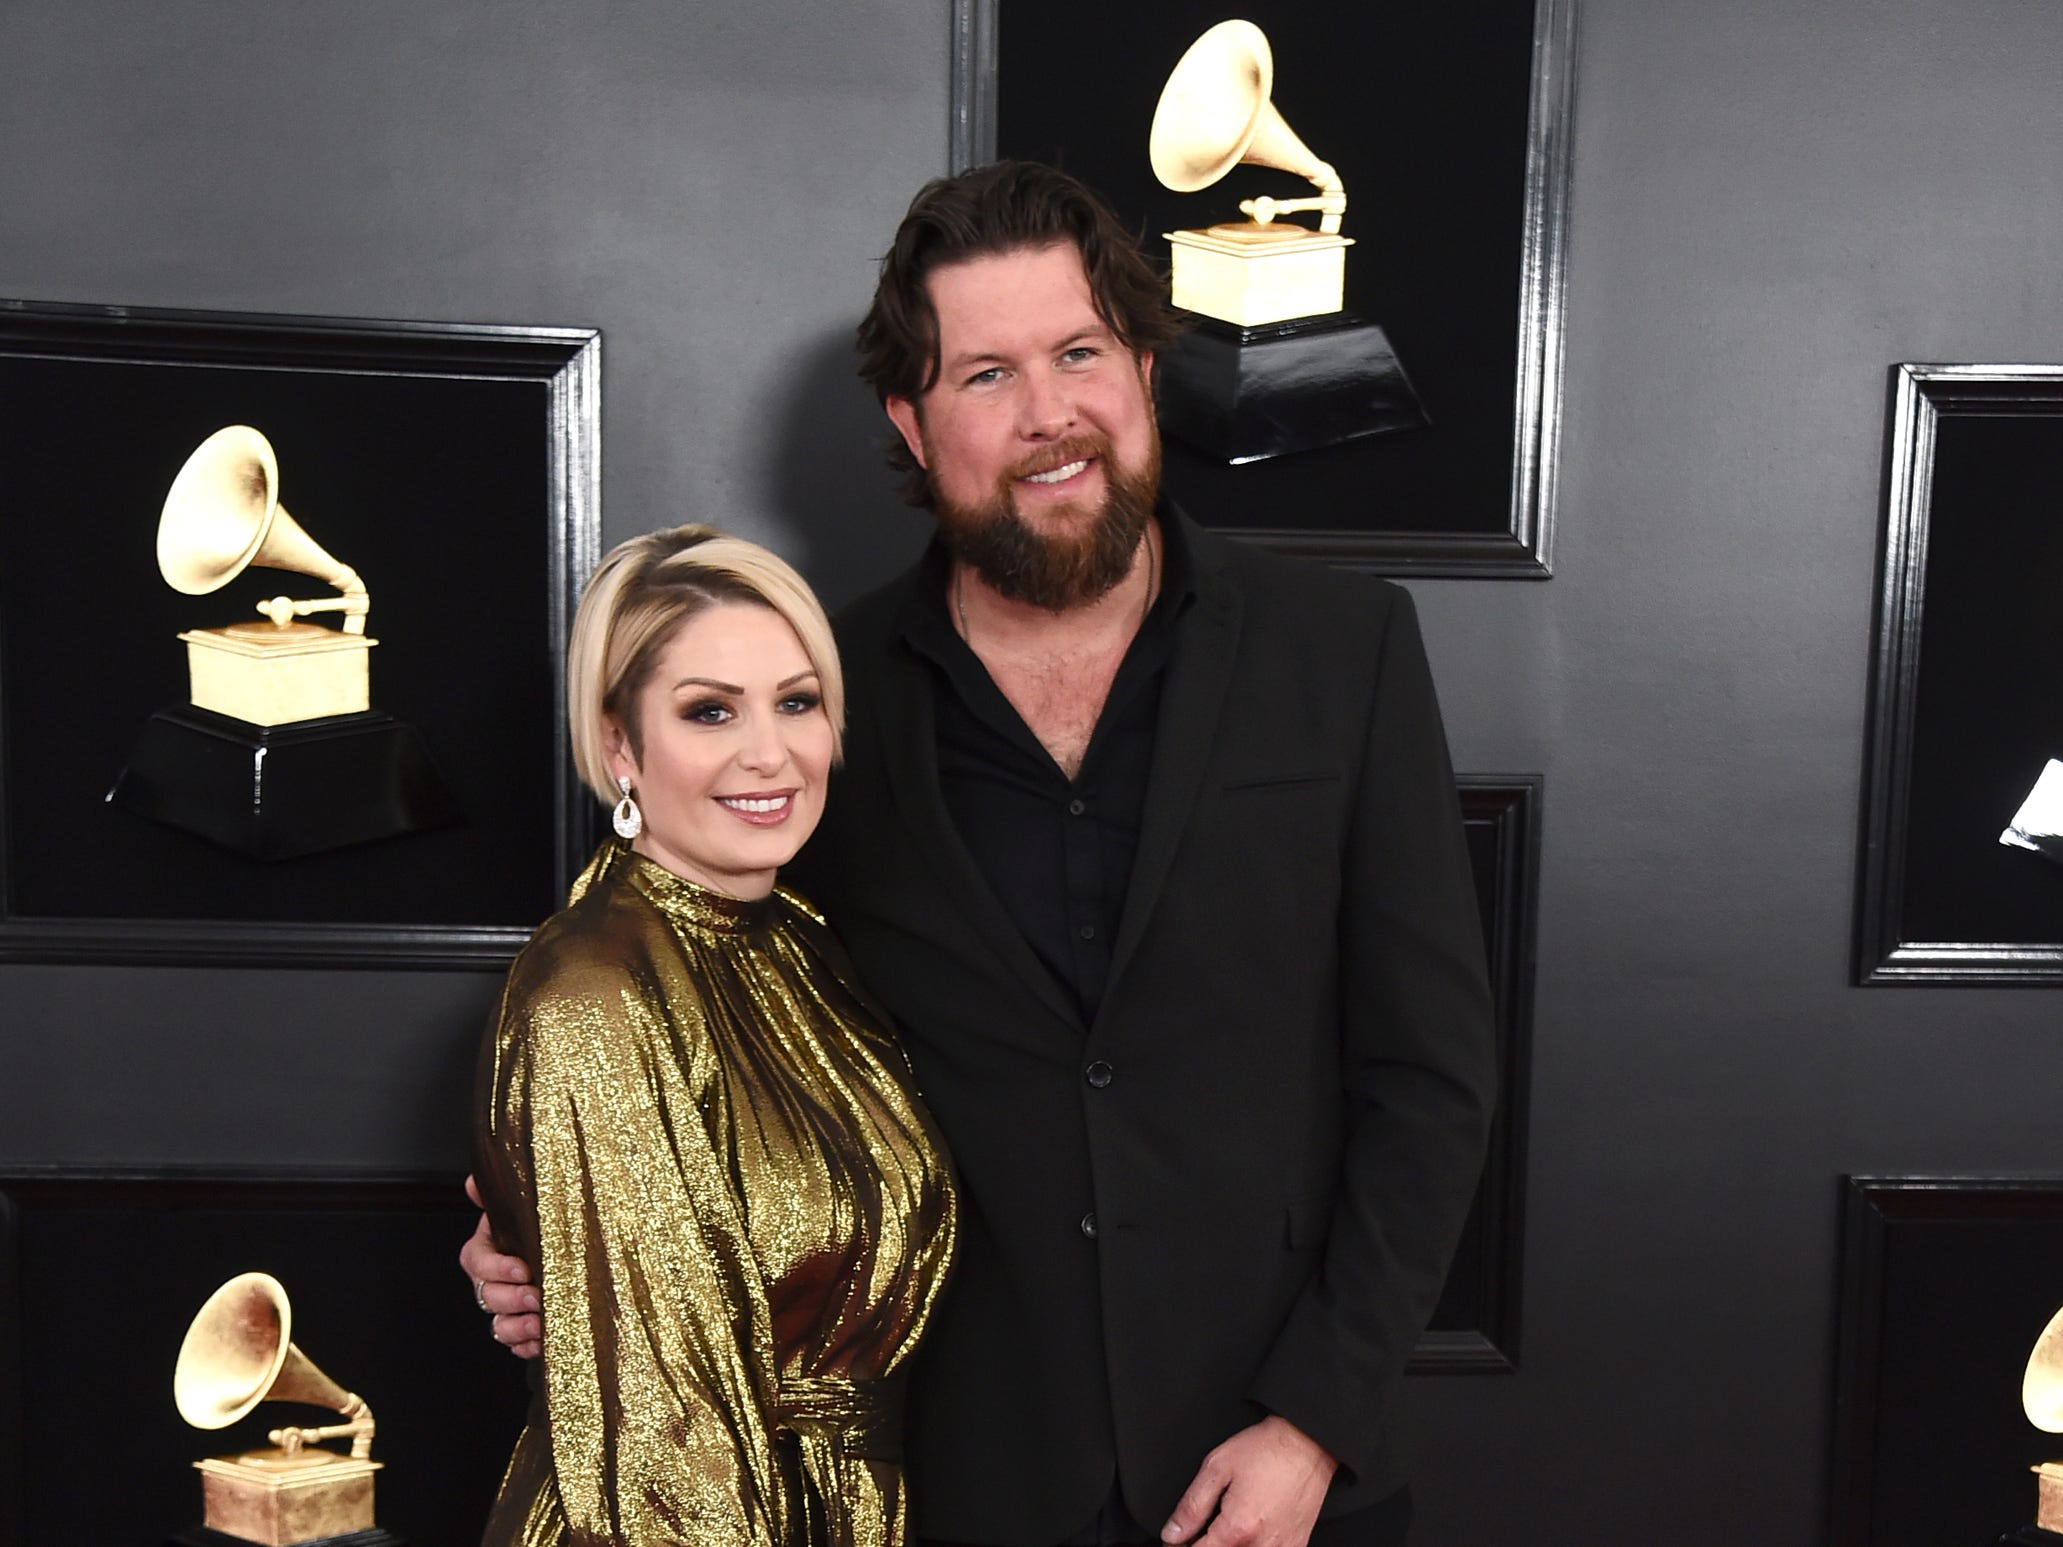 Zach Williams, right, and Crystal Williams arrive at the 61st annual Grammy Awards at the Staples Center on Sunday, Feb. 10, 2019, in Los Angeles.